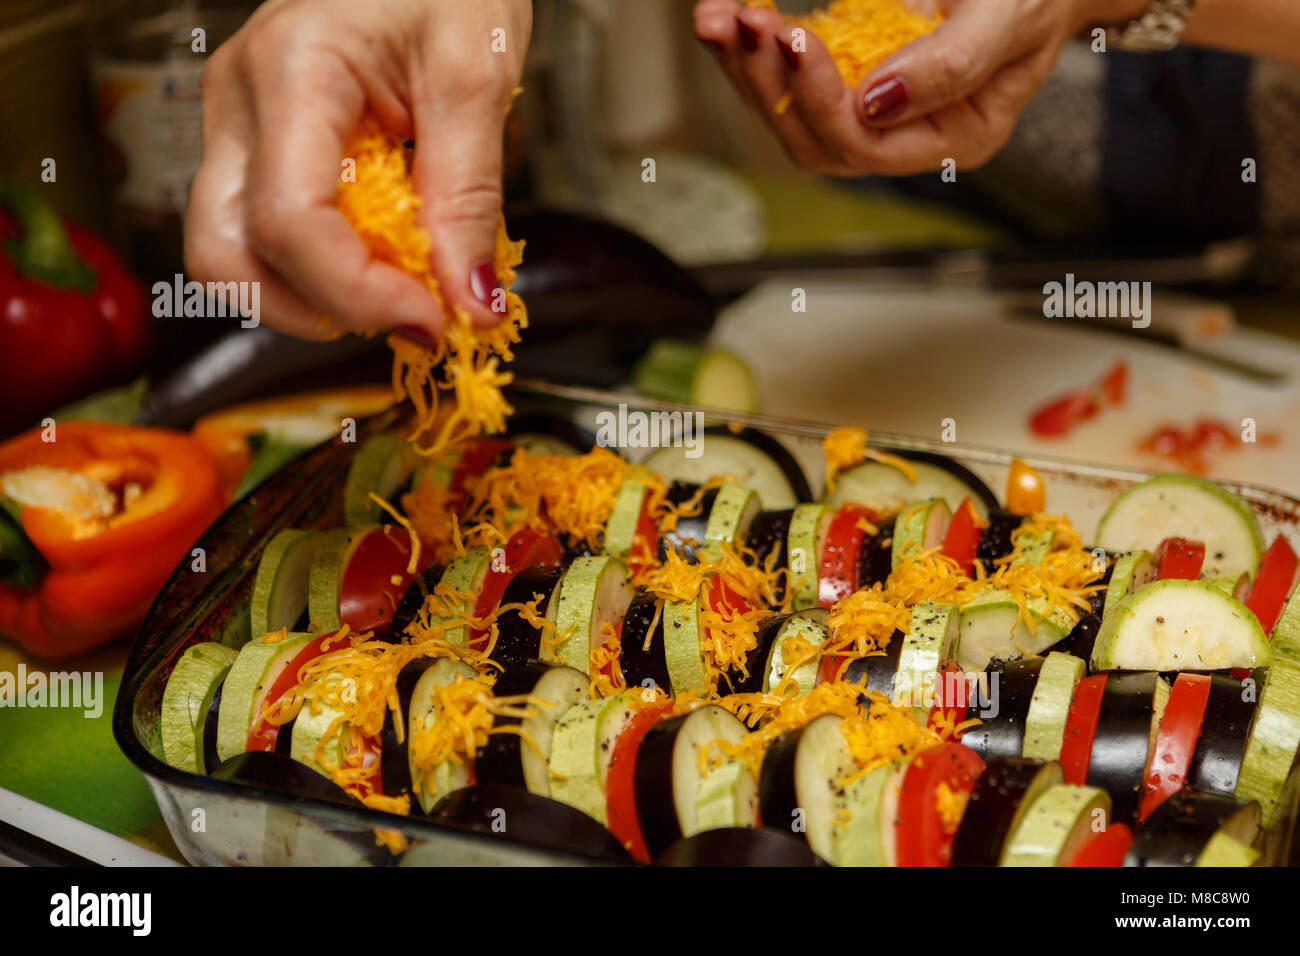 Vegetable ratatouille during cooking. Female hands sprinkle cheese Cheder stacked rows of beautiful vegetables. - Stock Image